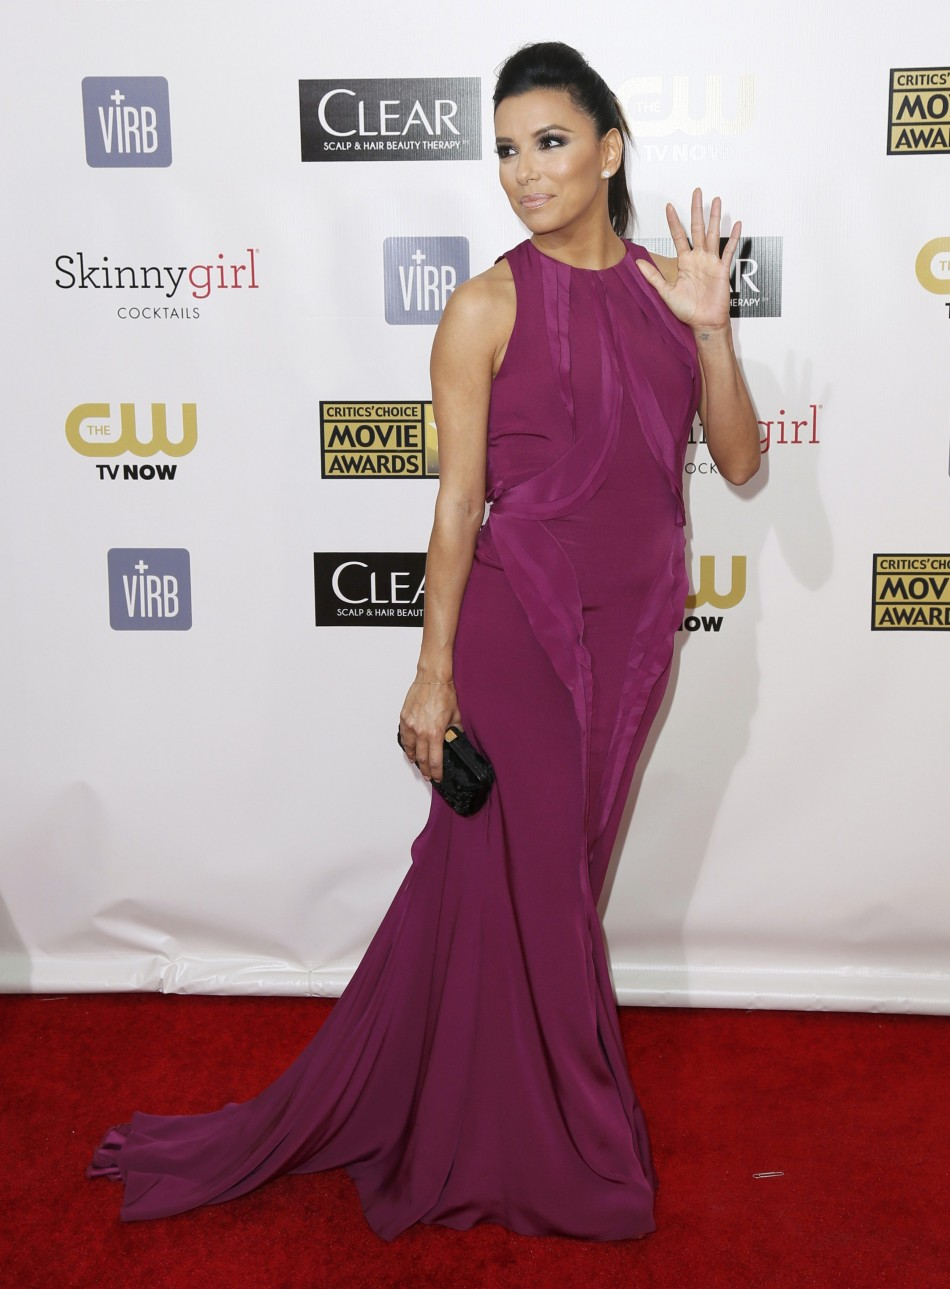 Actress Eva Longoria poses on arrival at the 2013 Critics' Choice Awards in Santa Monica